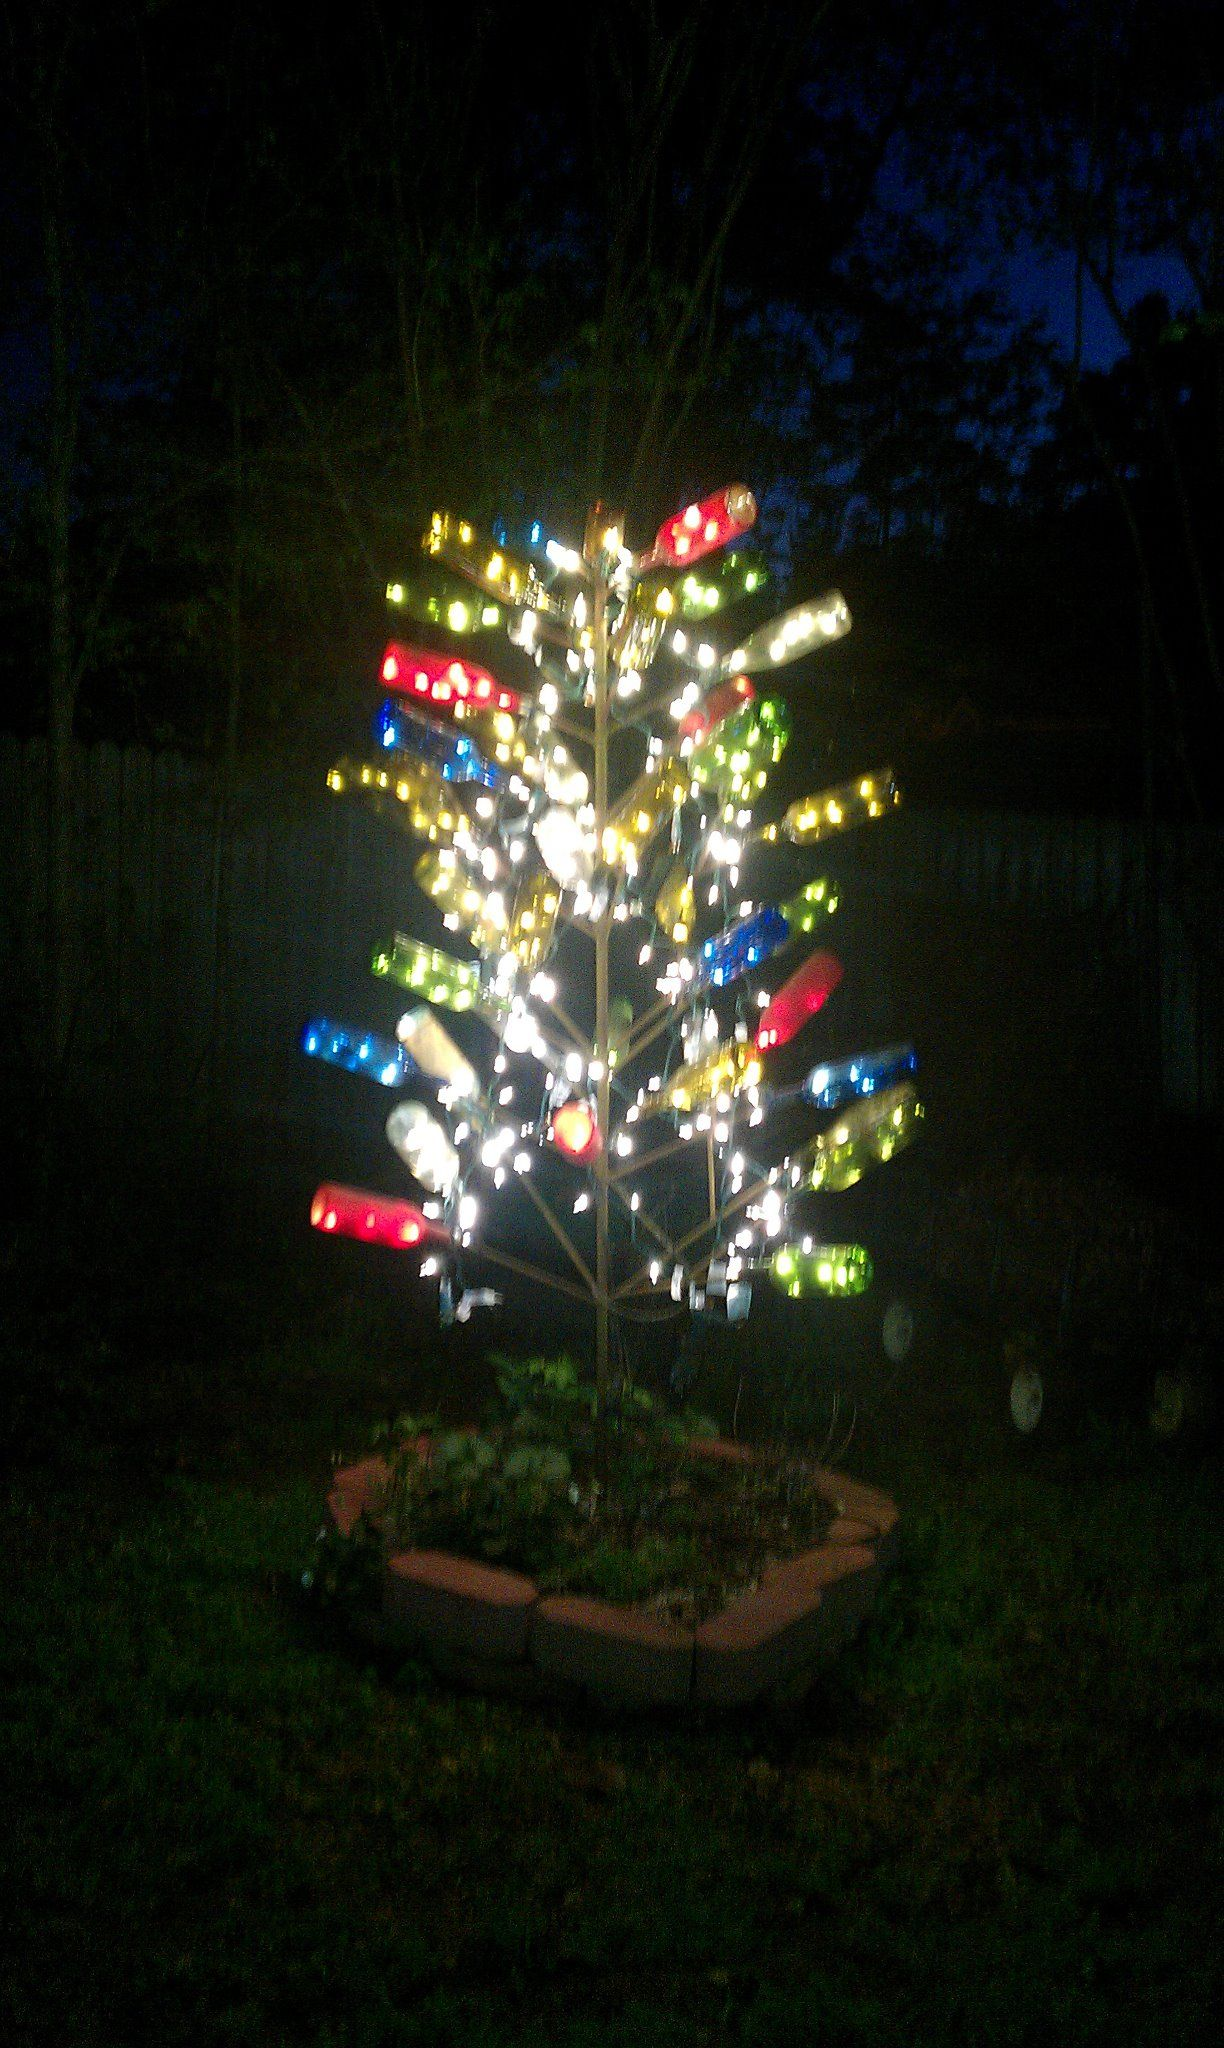 My bottle tree made of rebar a variety colored